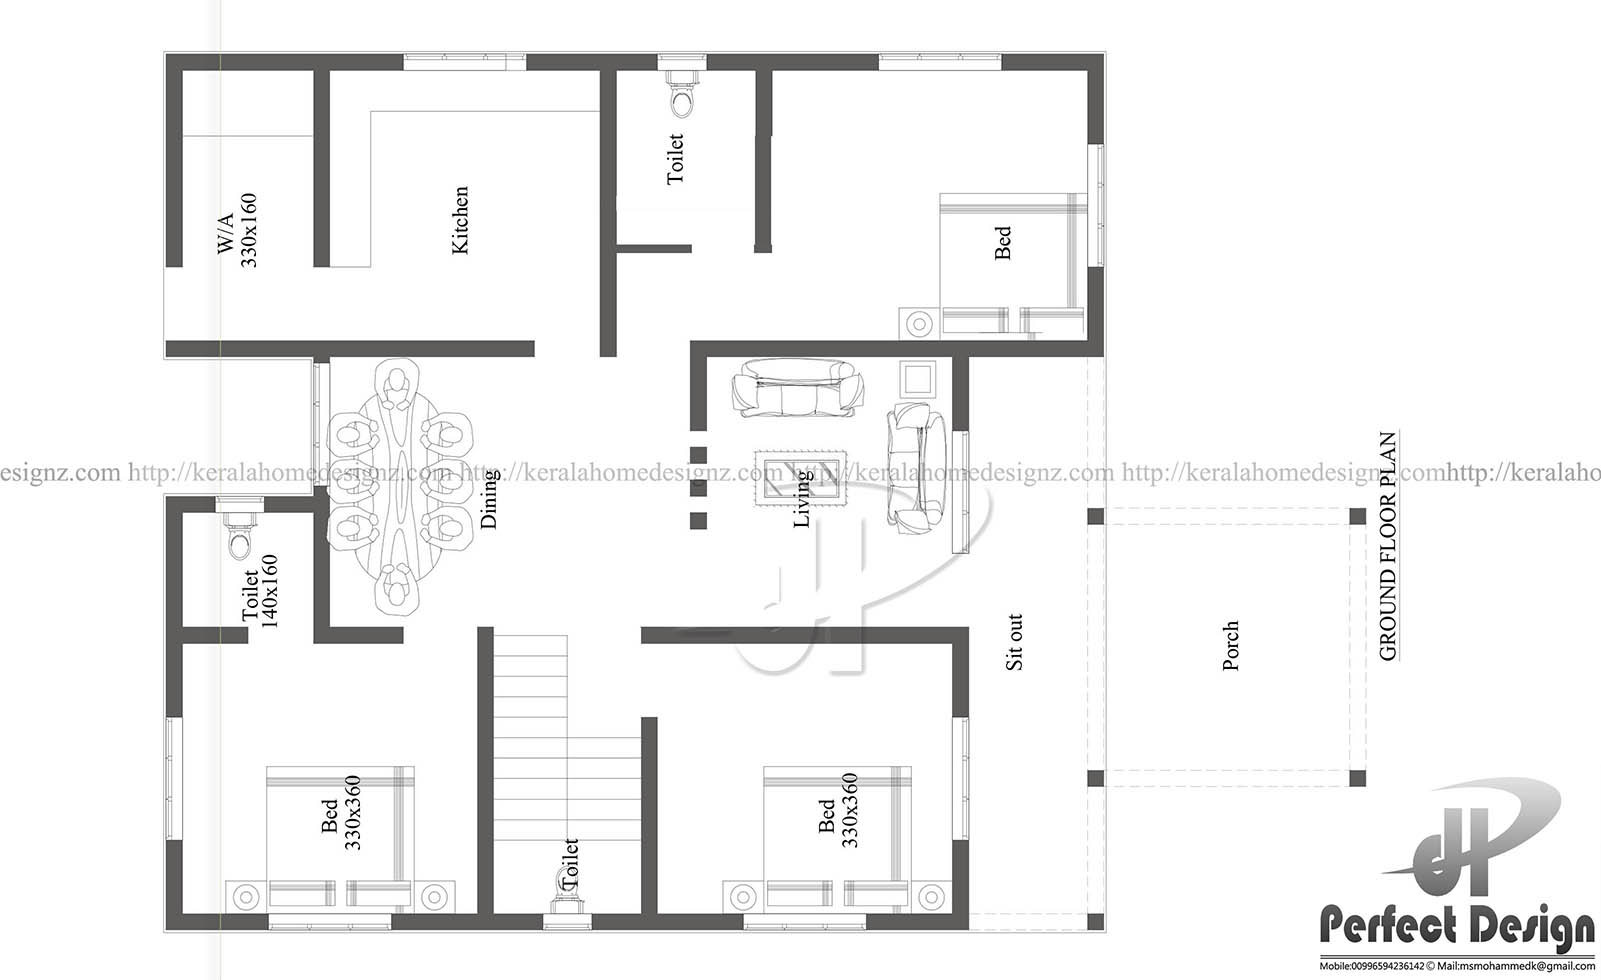 Specifications:  Ground Floor Is Designed In 107 Square Meter(1153 Sq.Ft)